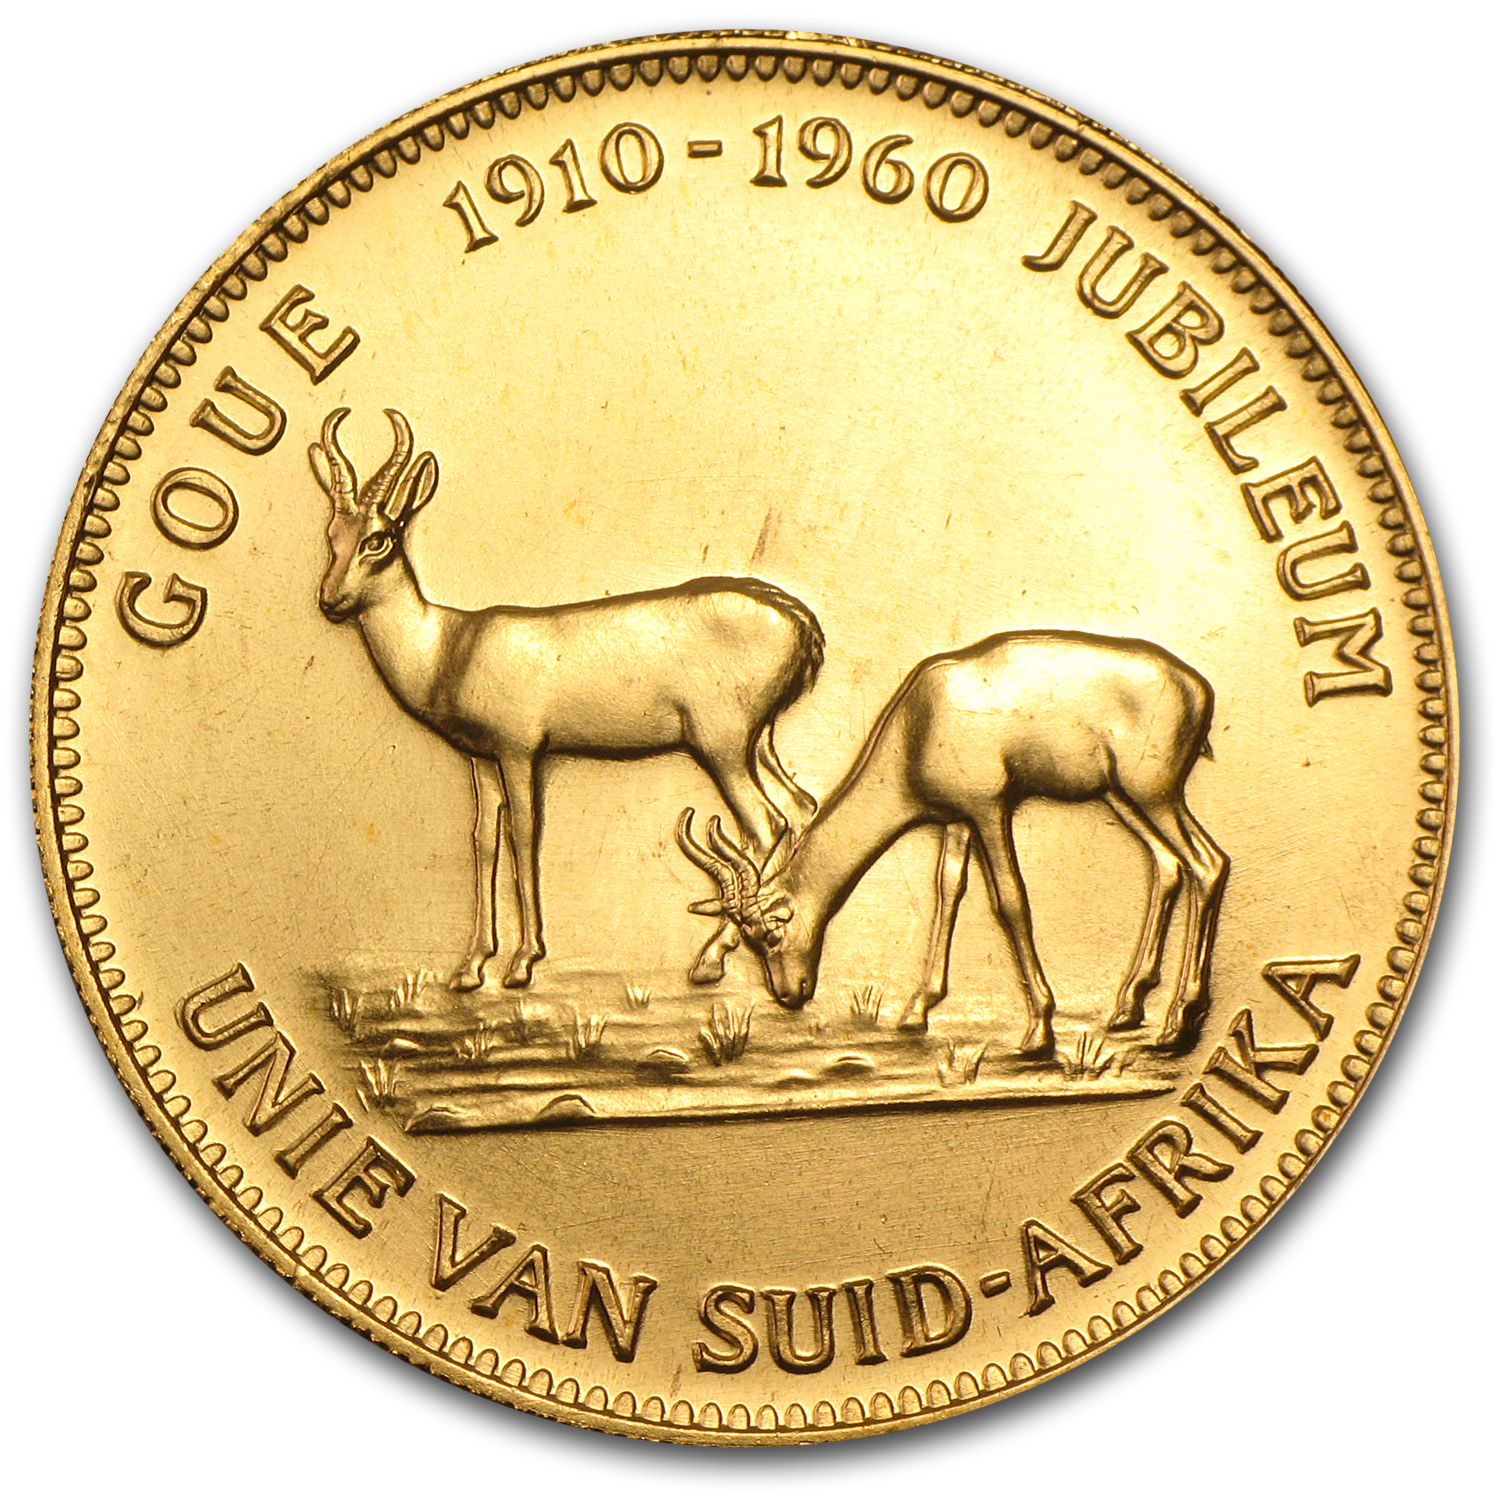 1960 South African Gold 1 oz Medal (Golden Jubilee) (Afrikaans)